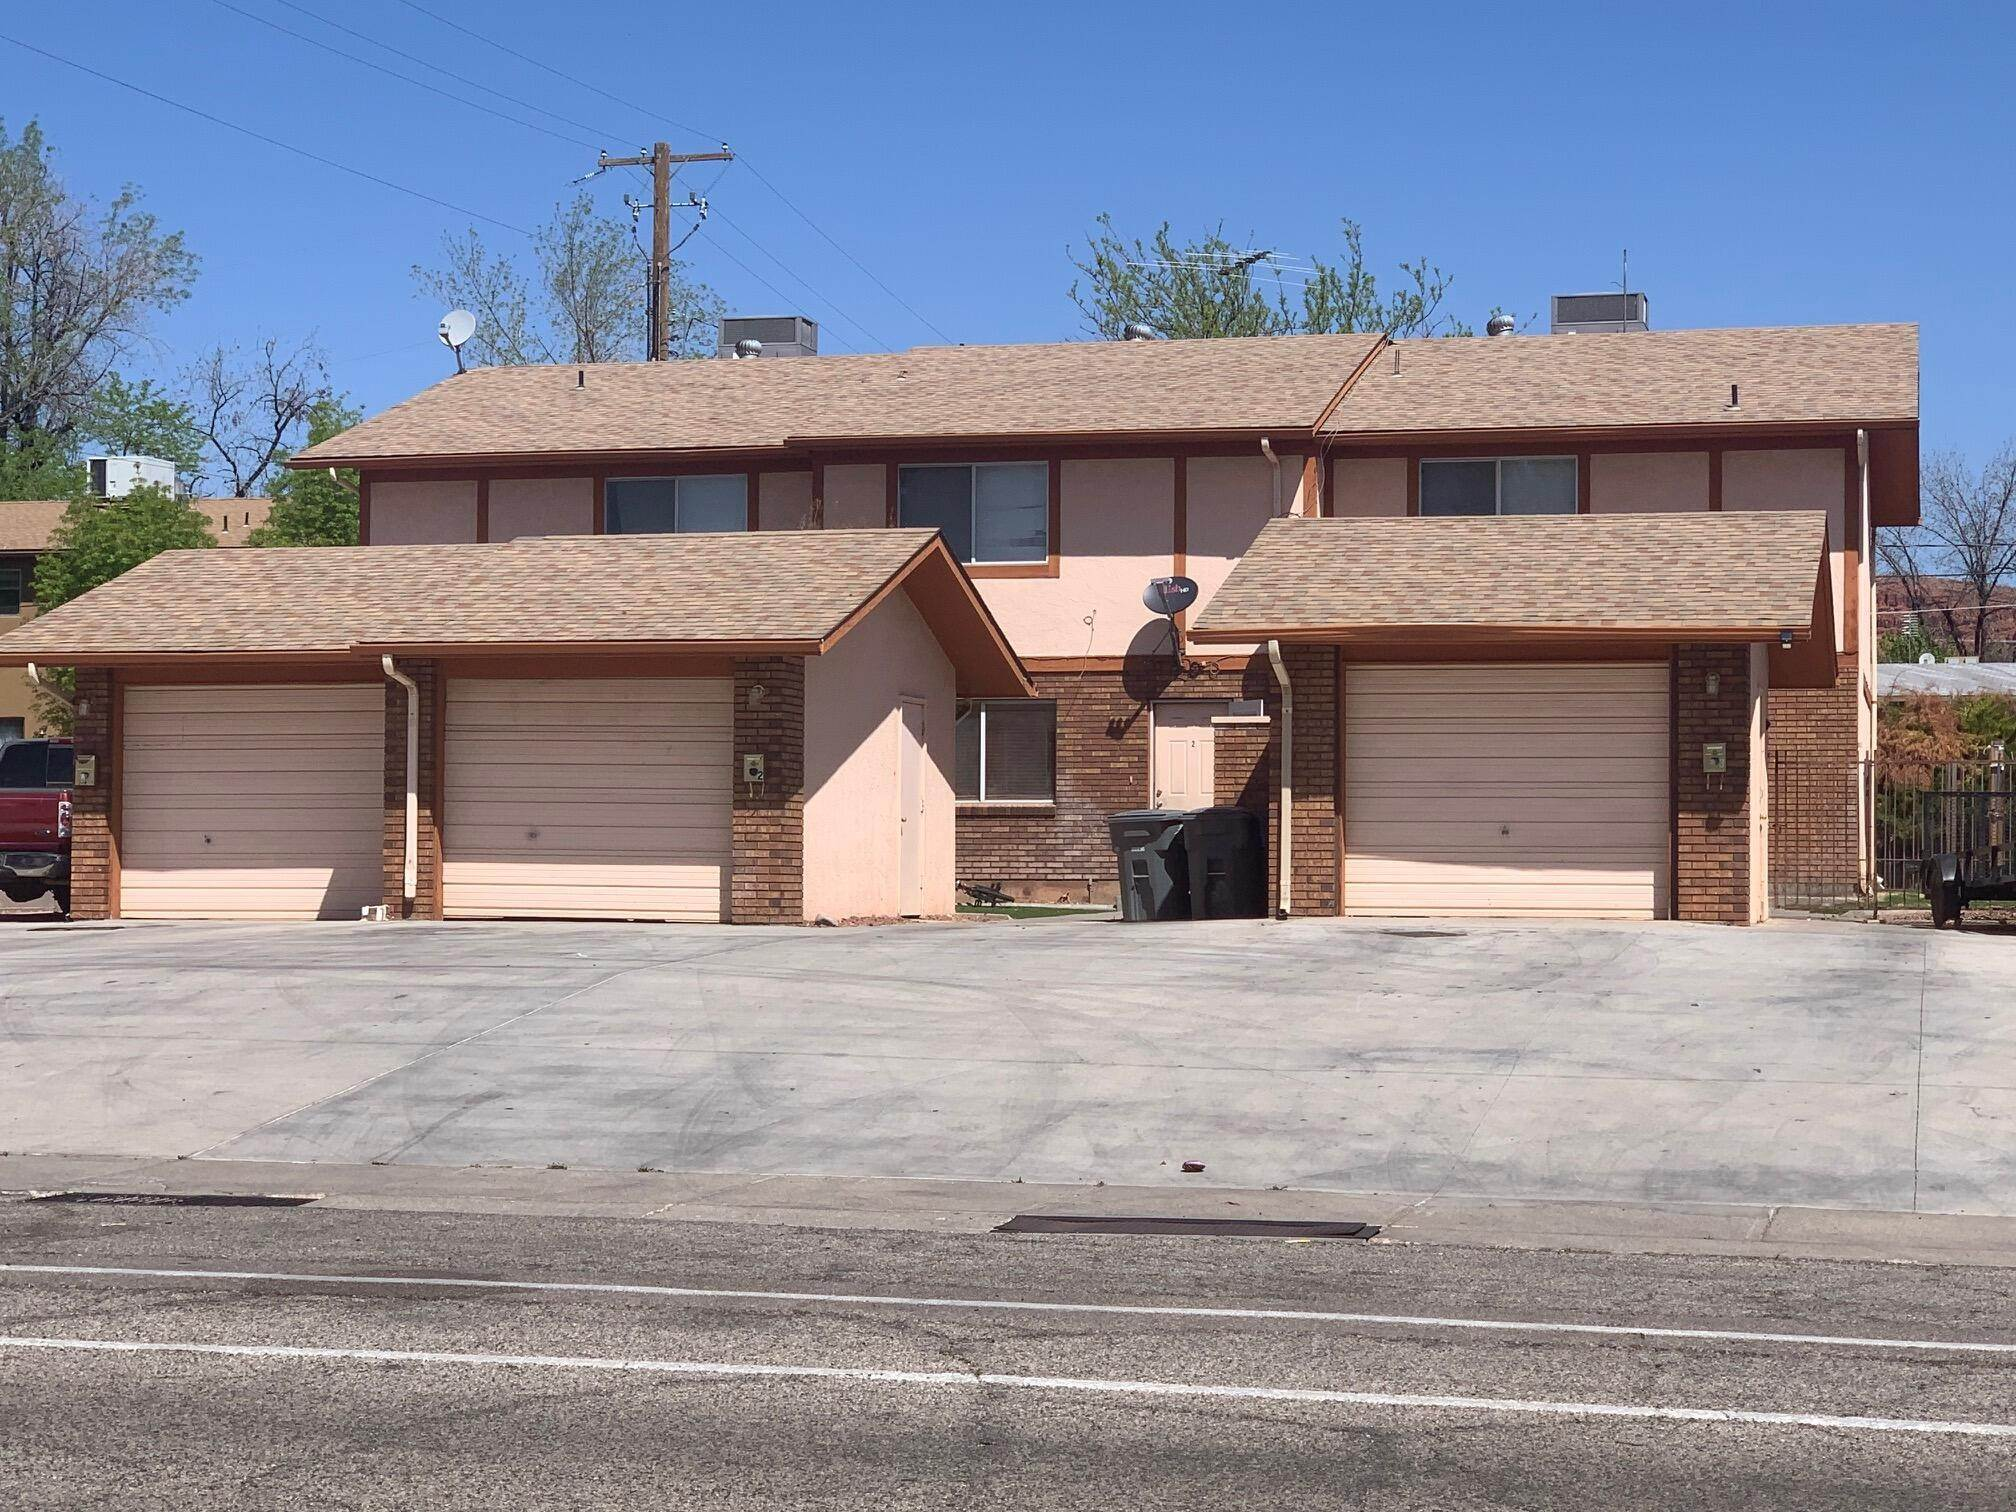 Multi-Family Homes for Sale at 34 300 S Street St. George, Utah 84770 United States